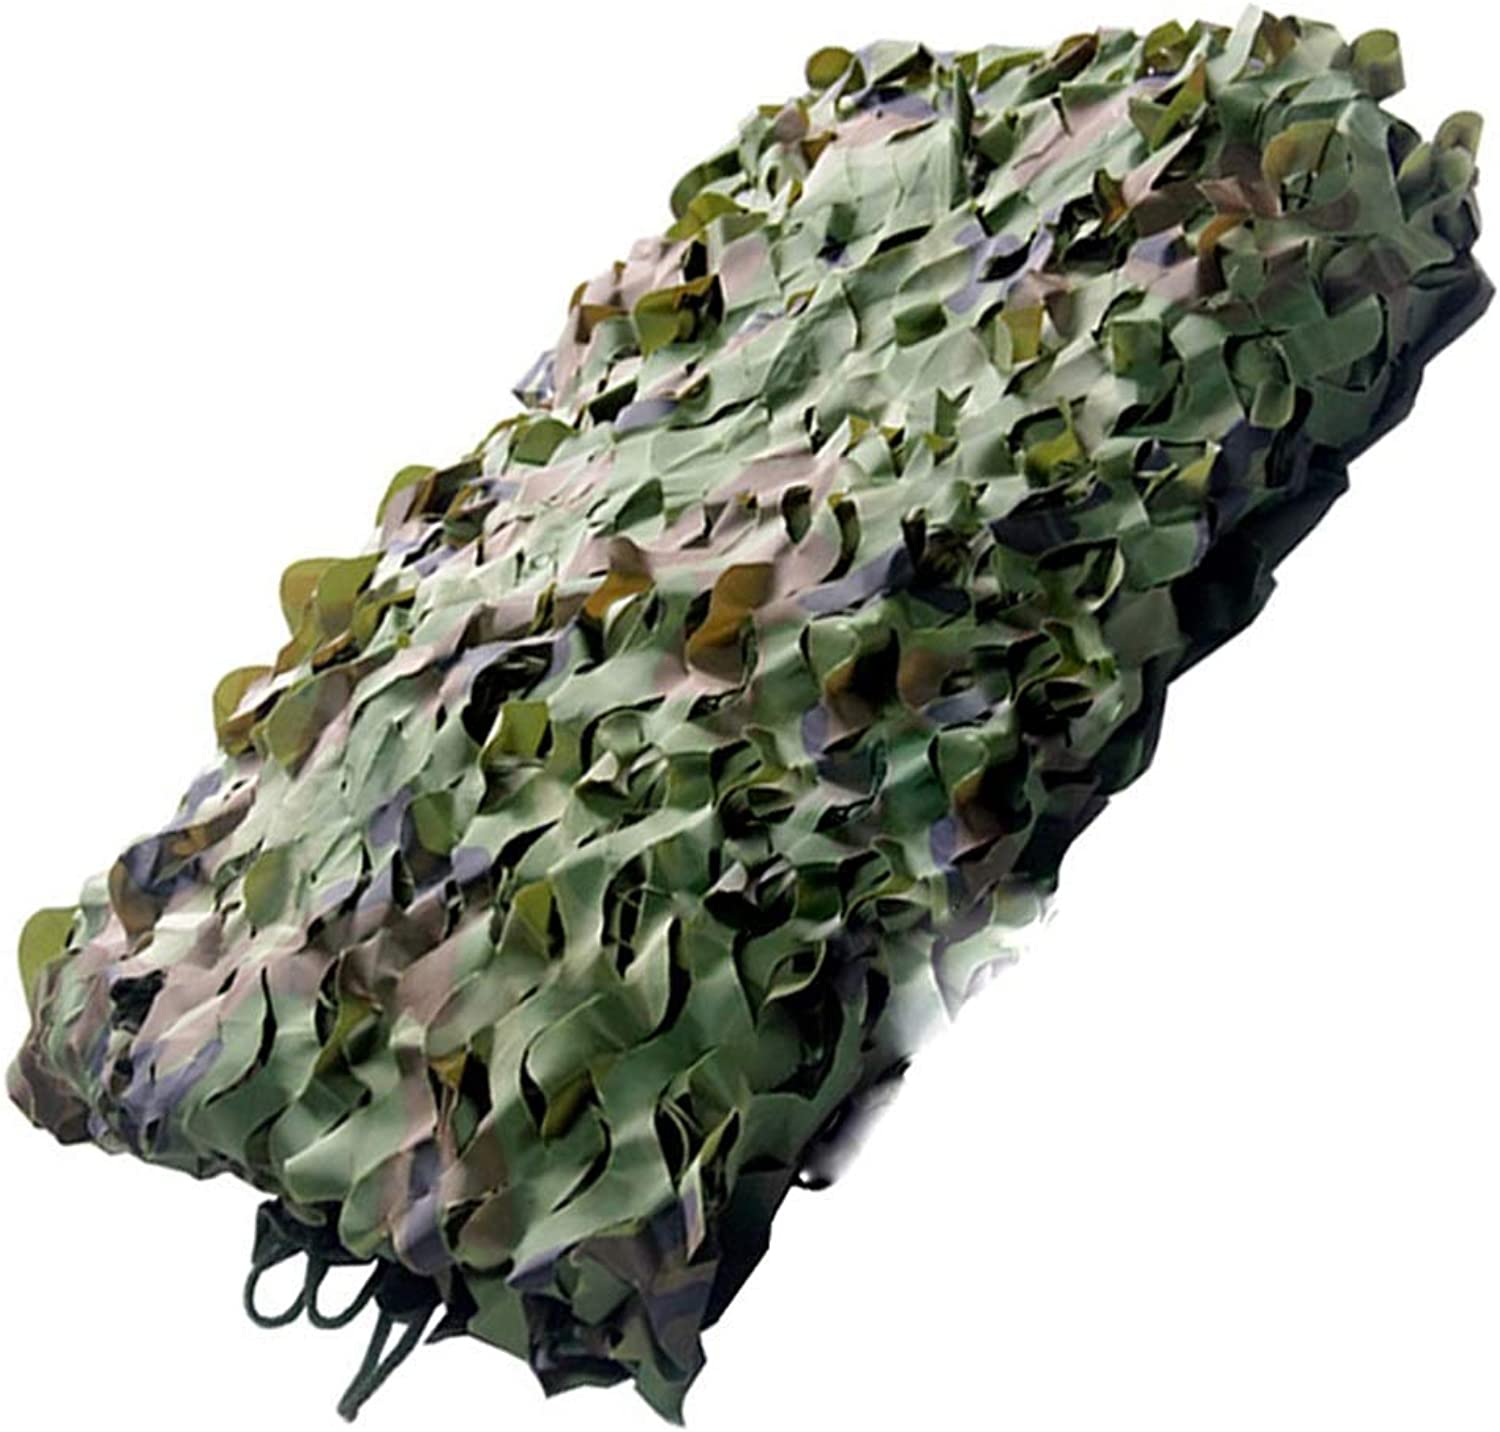 Forest Mode Camouflage Net 210D Polyester Oxford Cloth Shade Net Hidden Tent Camping Cover Decorative Camouflage Net MultiSize Optional